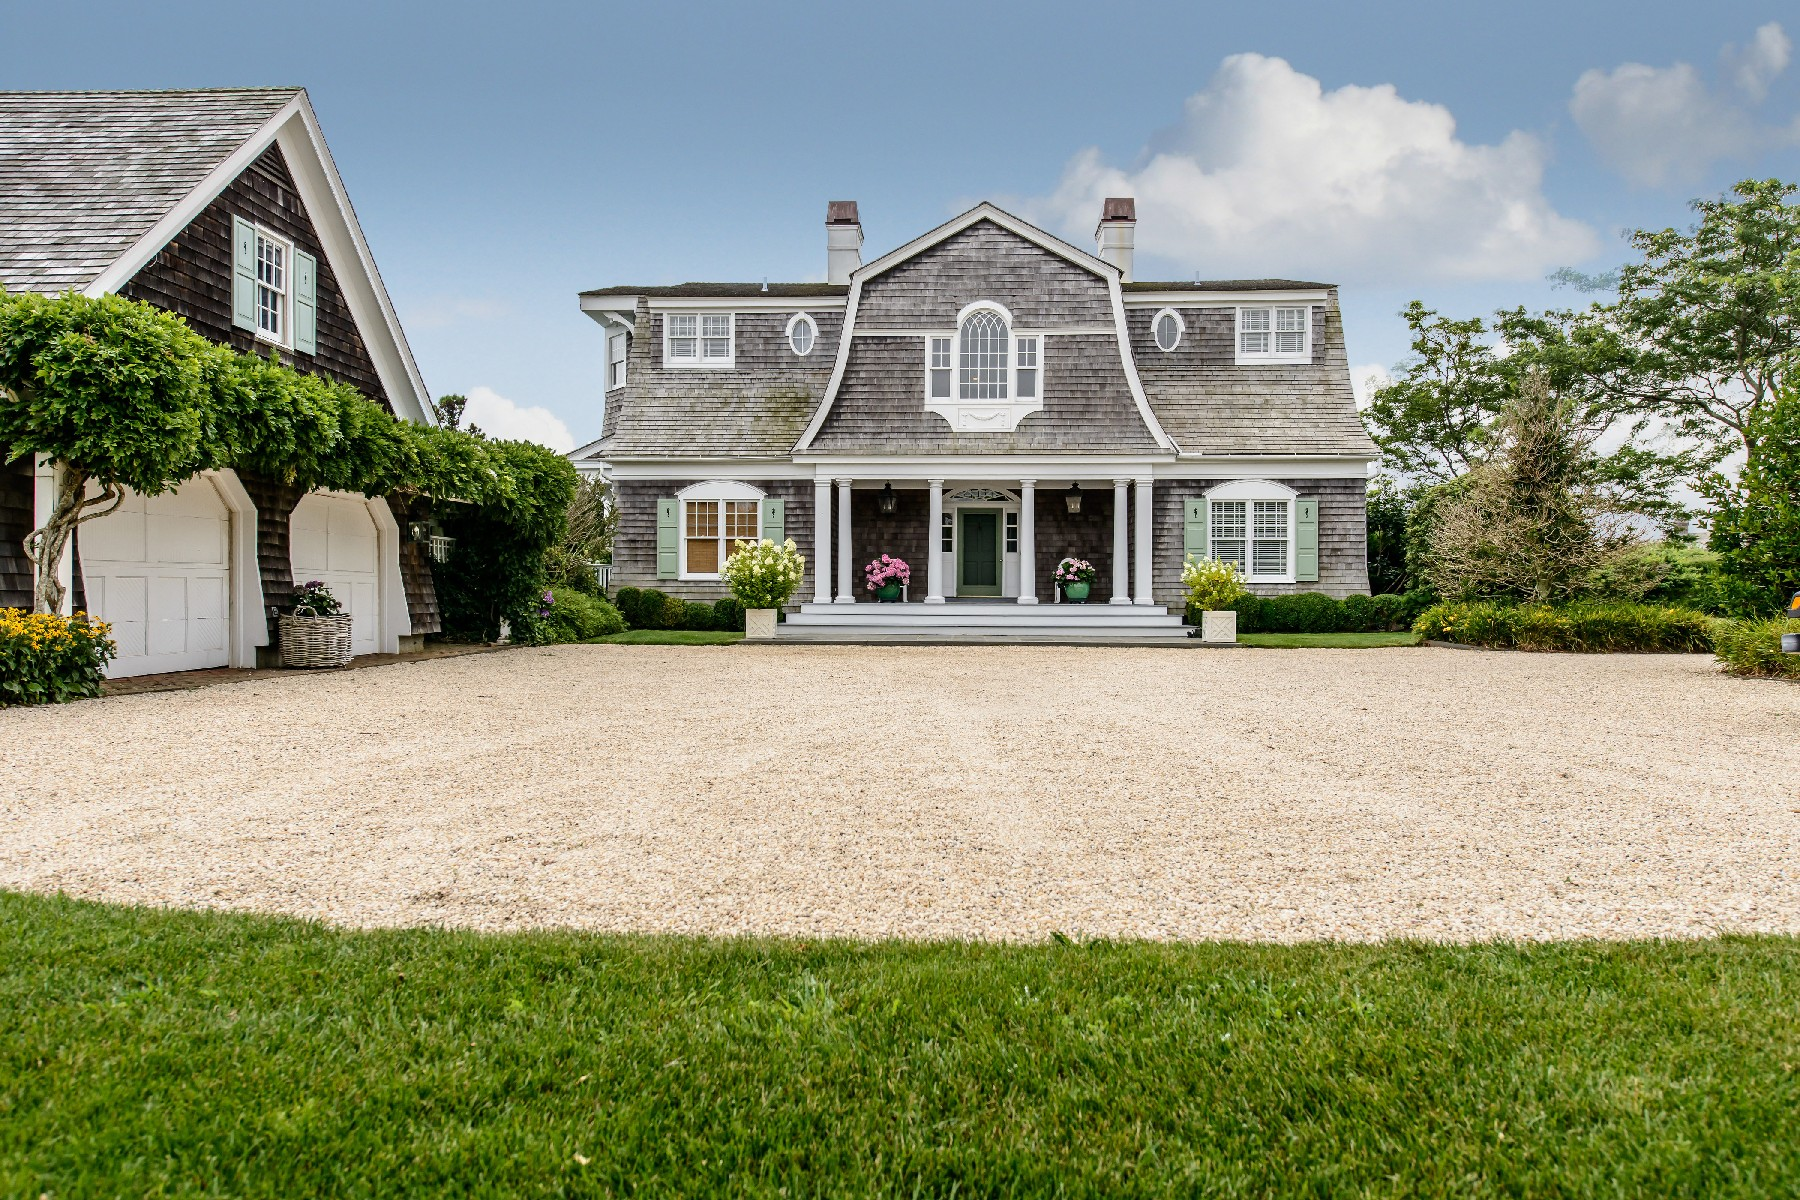 Single Family Home for Sale at Ocean Breezes 557 Daniels Ln Sagaponack, New York, 11962 United States